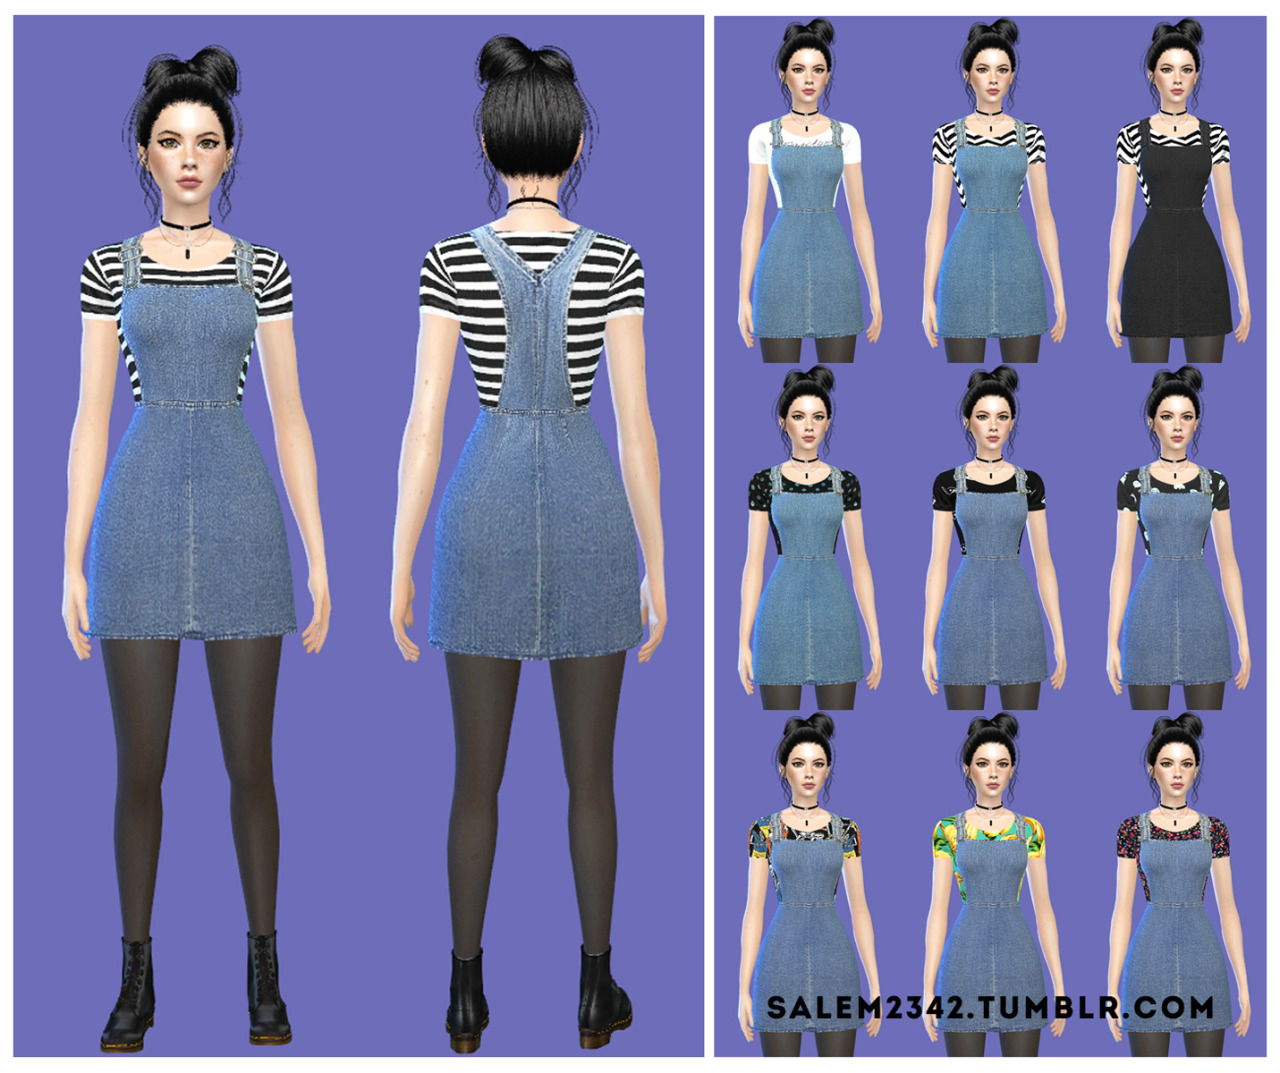 Denim sundress by Salem2342